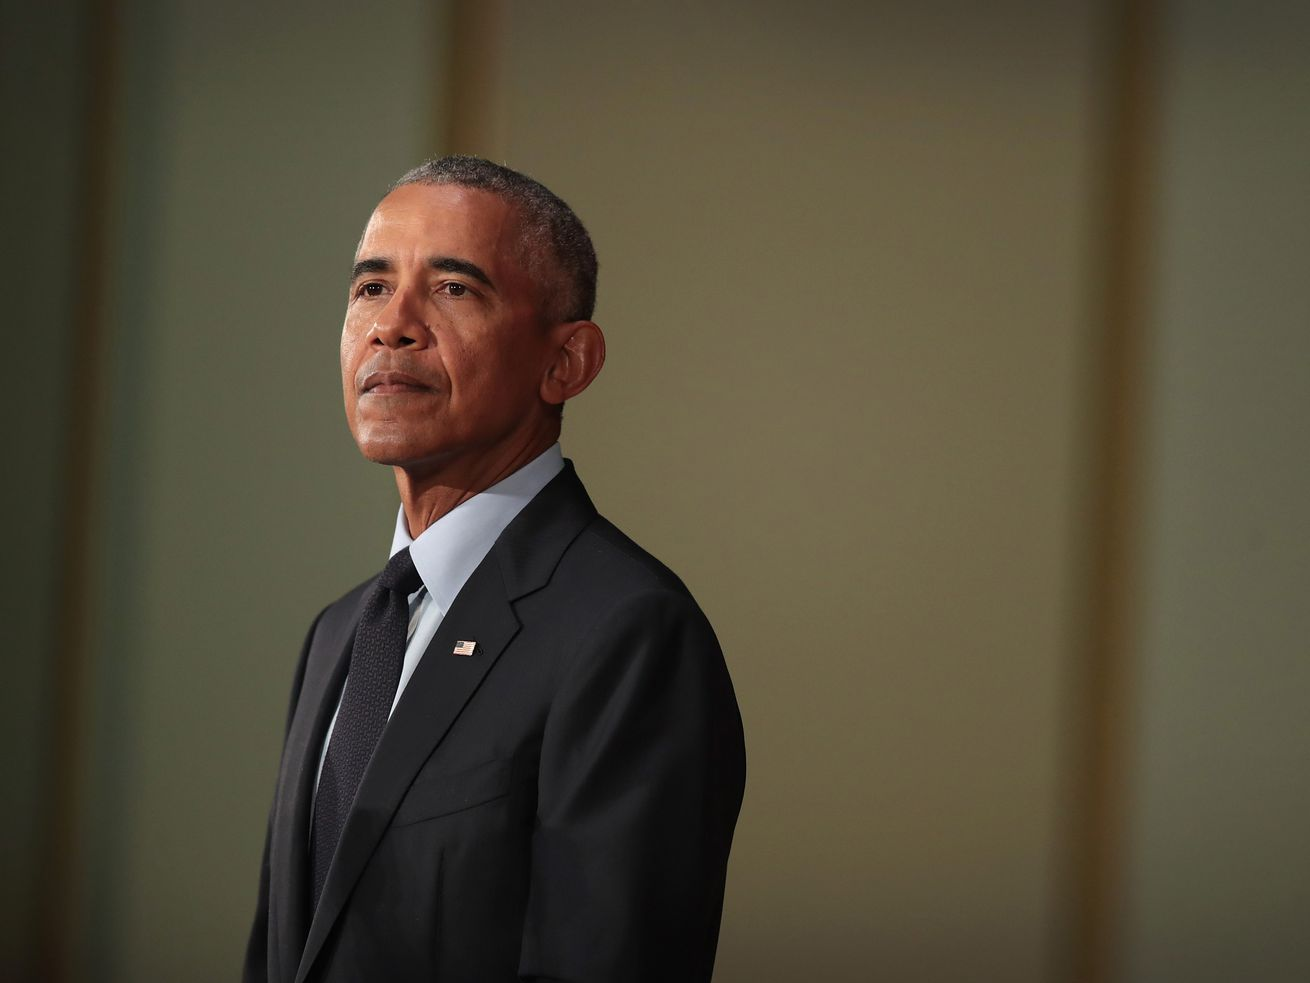 Former President Barack Obama speaks at the University of Illinois on Friday, September 7.